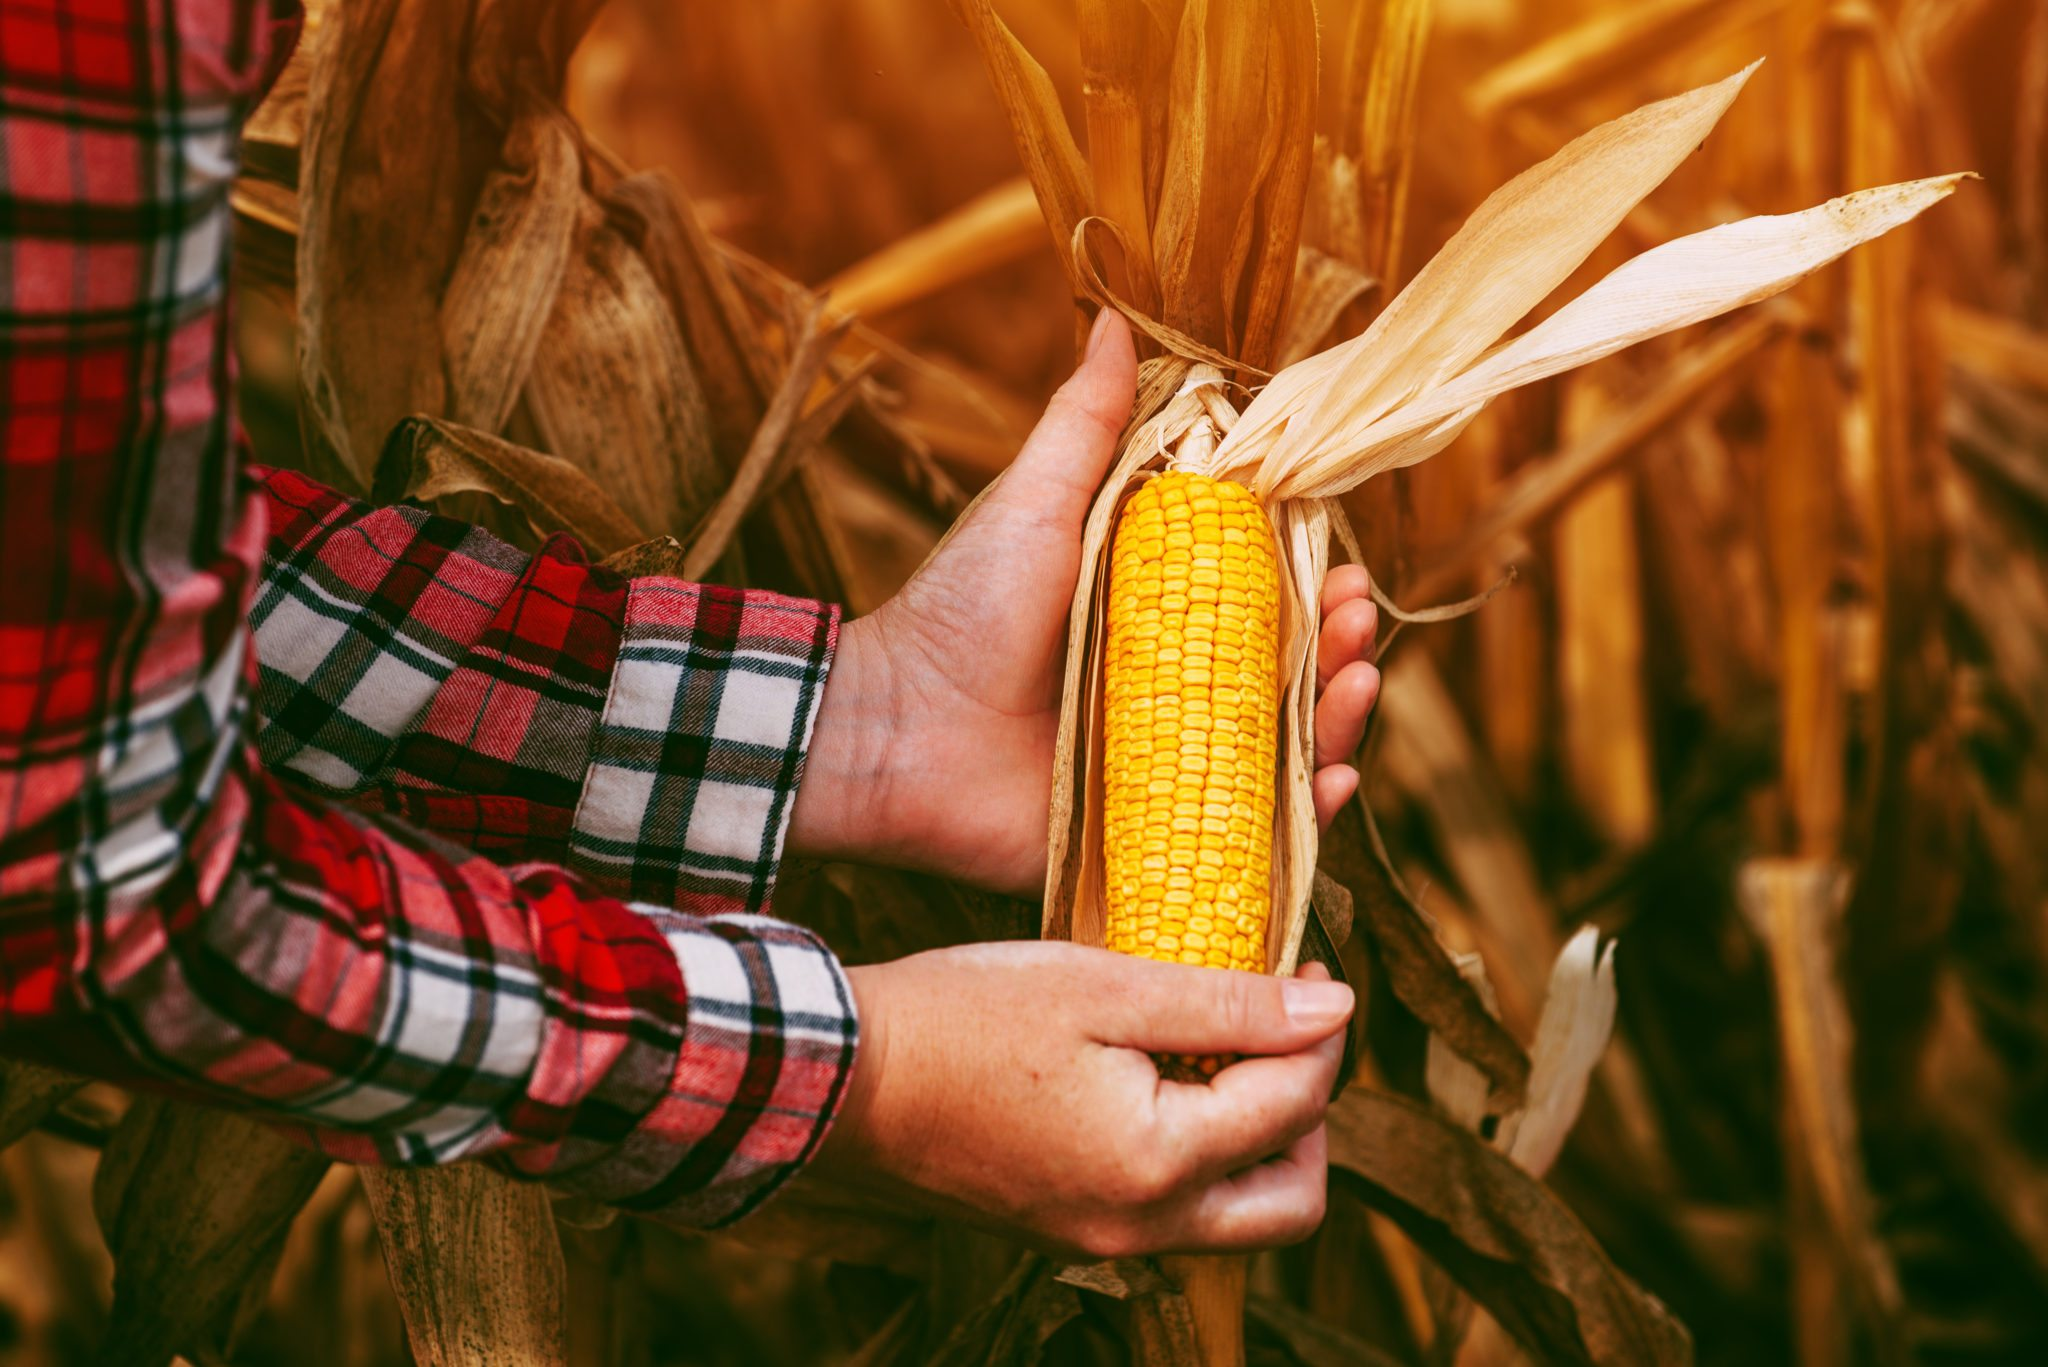 Farmer with harvest ready ripe corn maize cob in field, adult female agronomist working on cultivated agricultural plantation